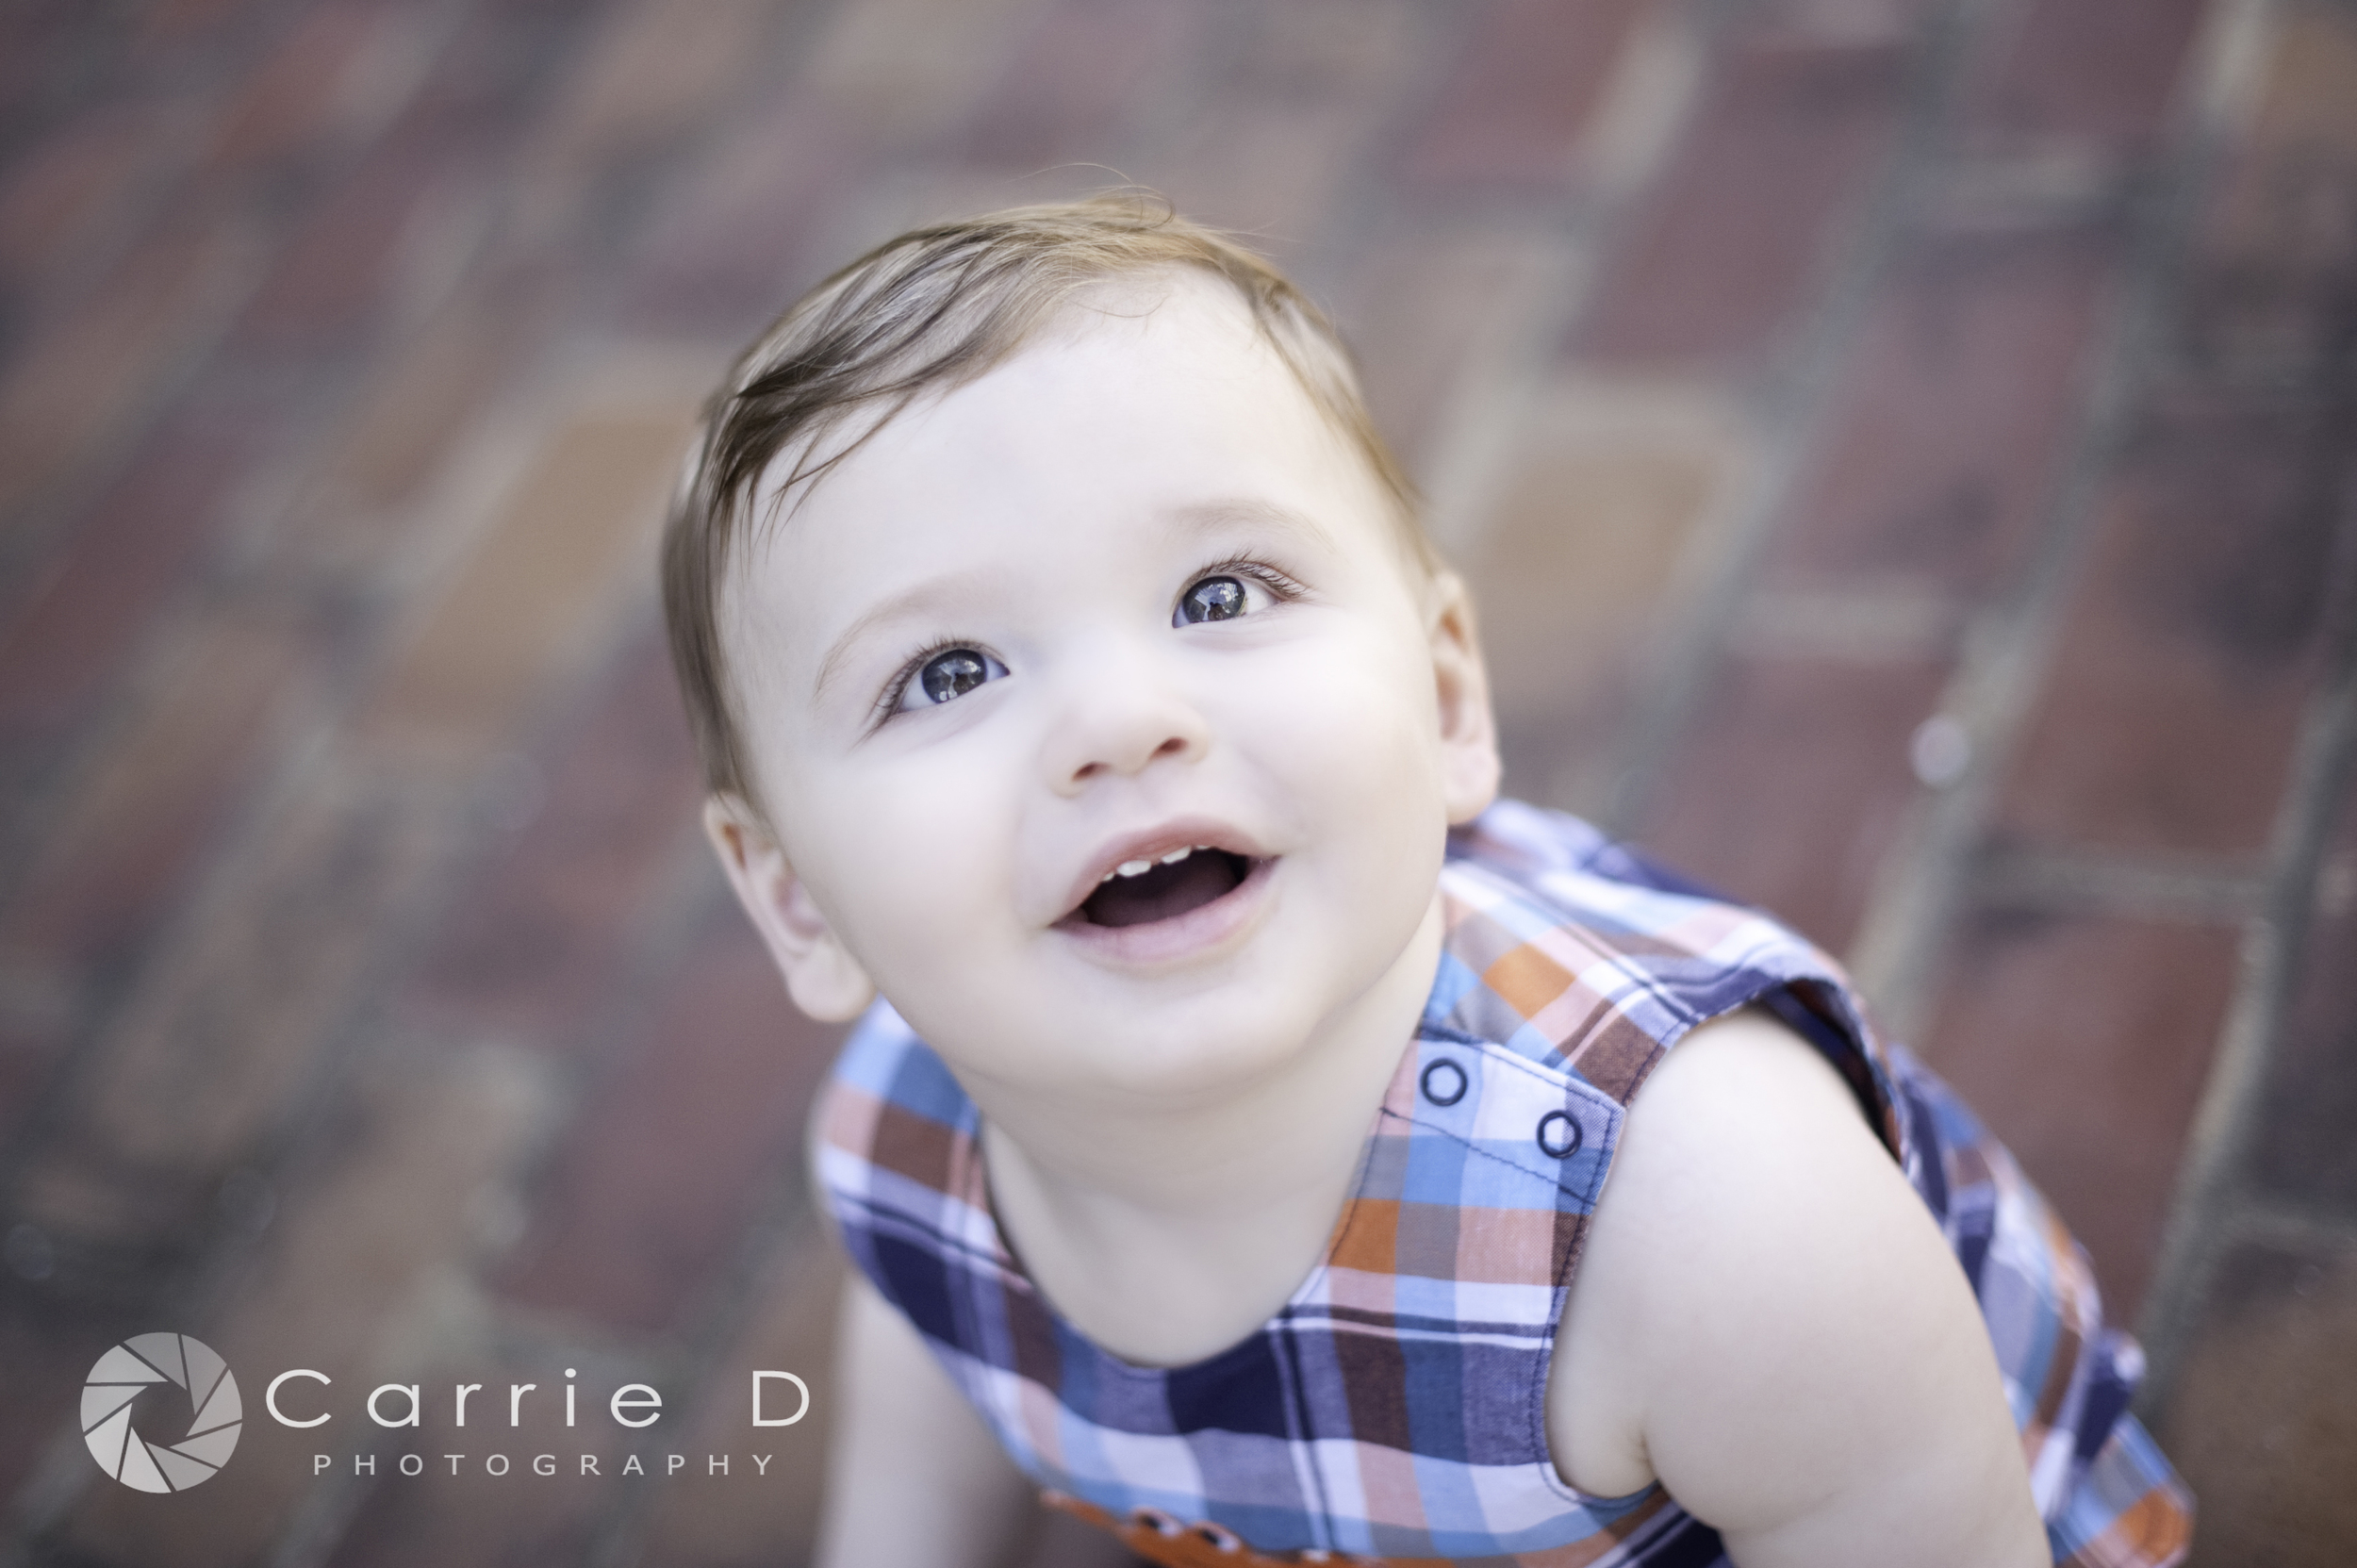 Northern Virginia Photographer – Northern Virginia Portrait Photographer – Northern Virginia Family Photographer – Northern Virginia Infant Photographer –Northern Virginia Natural Light Photographer – Northern Virginia Lifestyle Photographer –Northern Virginia Natural Light Portrait Photographer